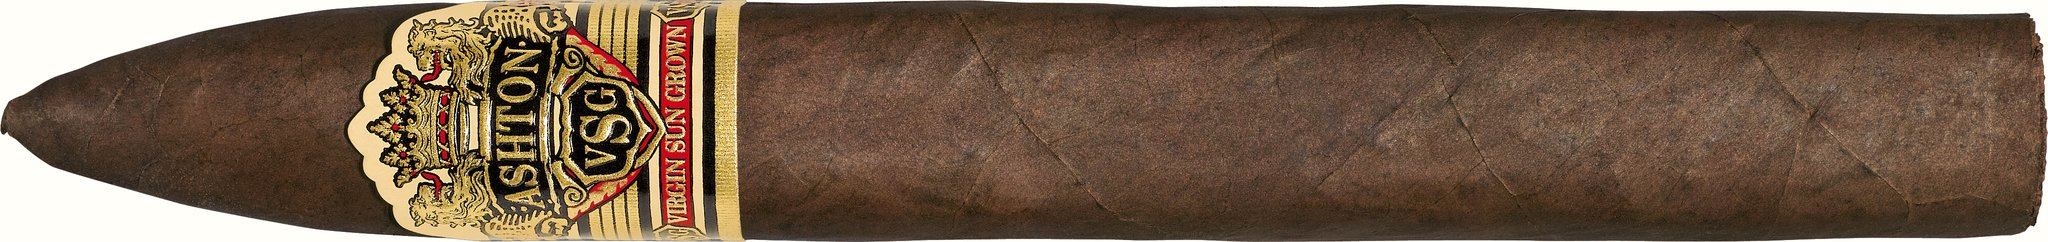 Ashton VSG (Virgin Sun Grown) Torpedo